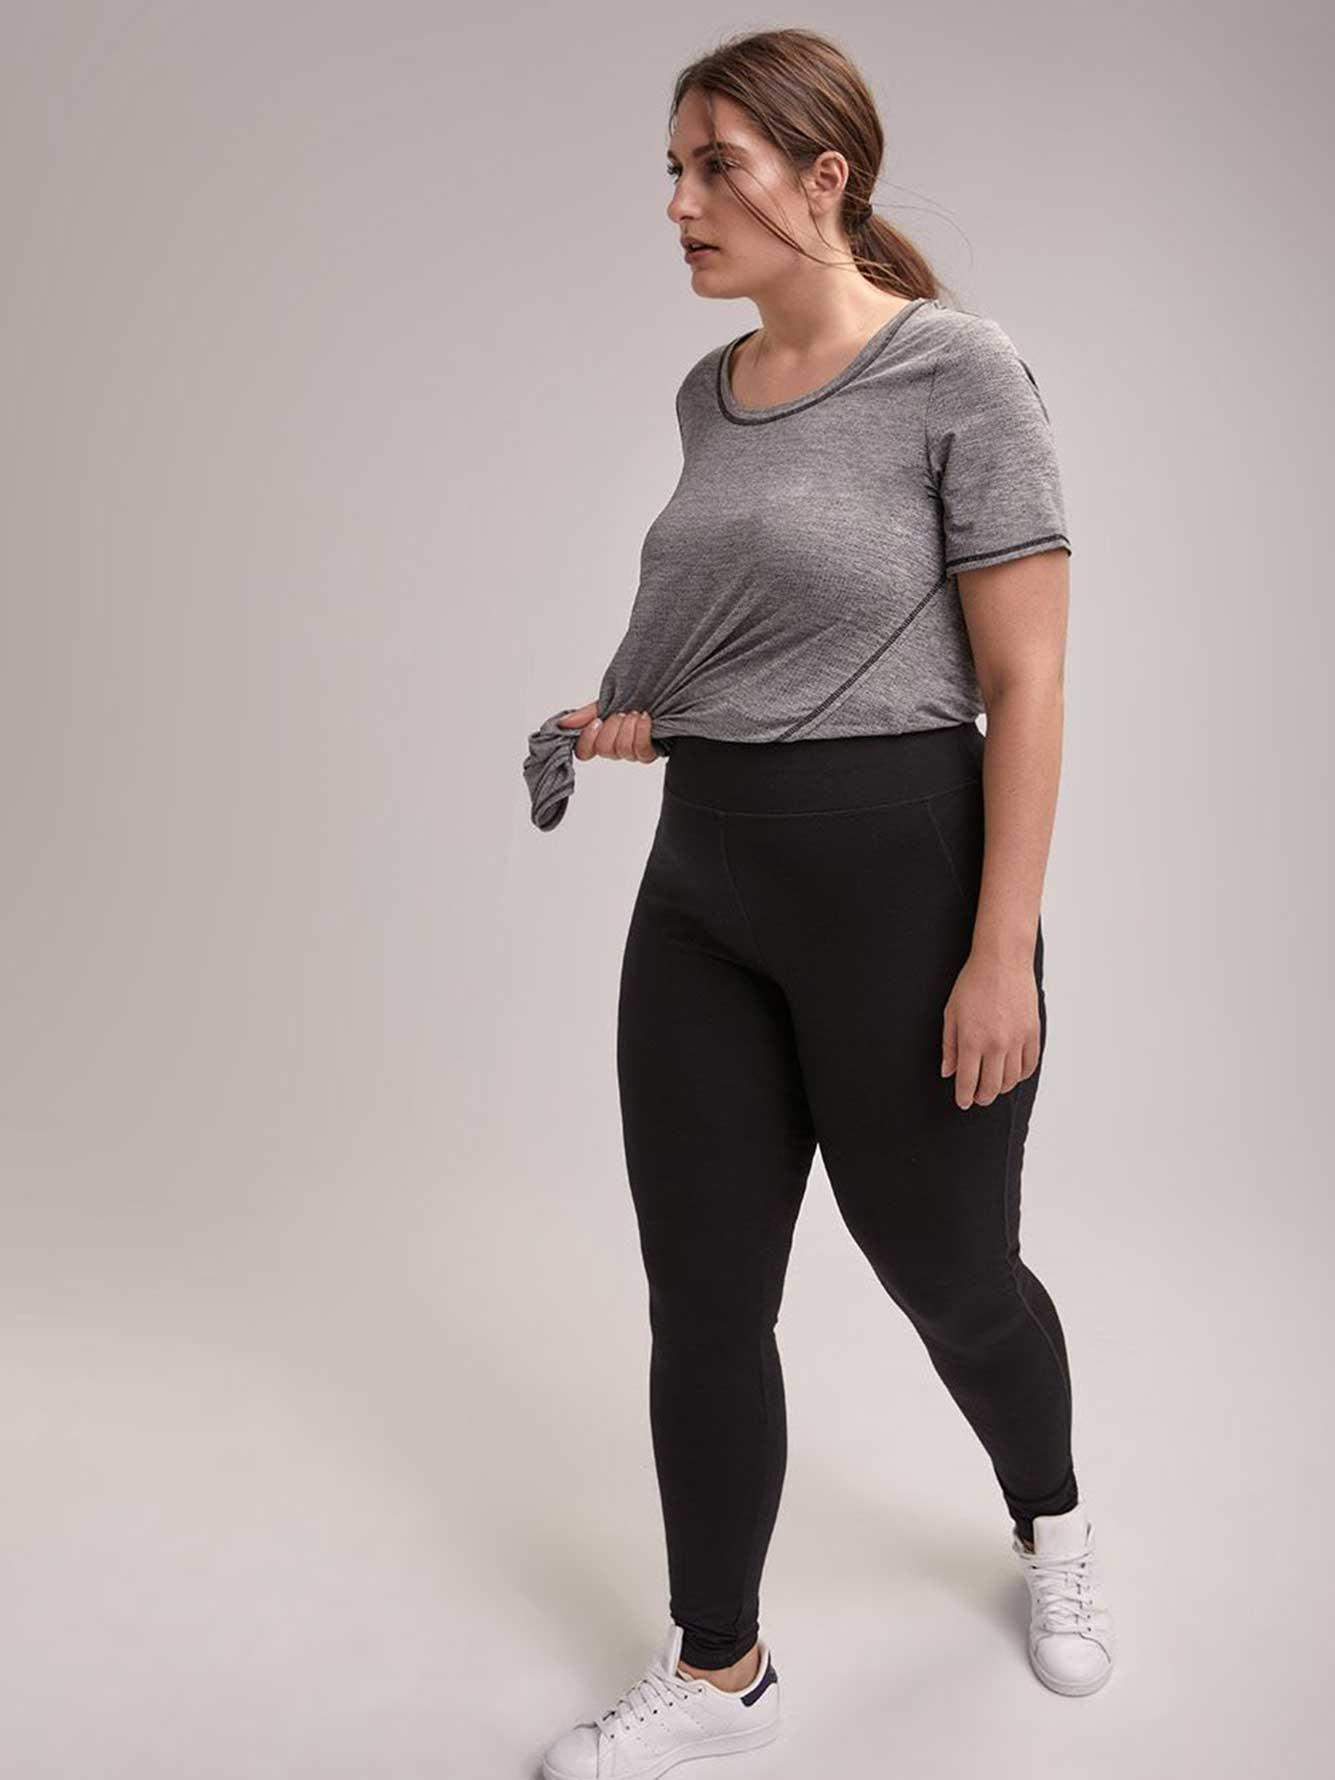 63f9aee1599e5d Addition Elle Online Only - Tall Plus-size Basic Legging ...